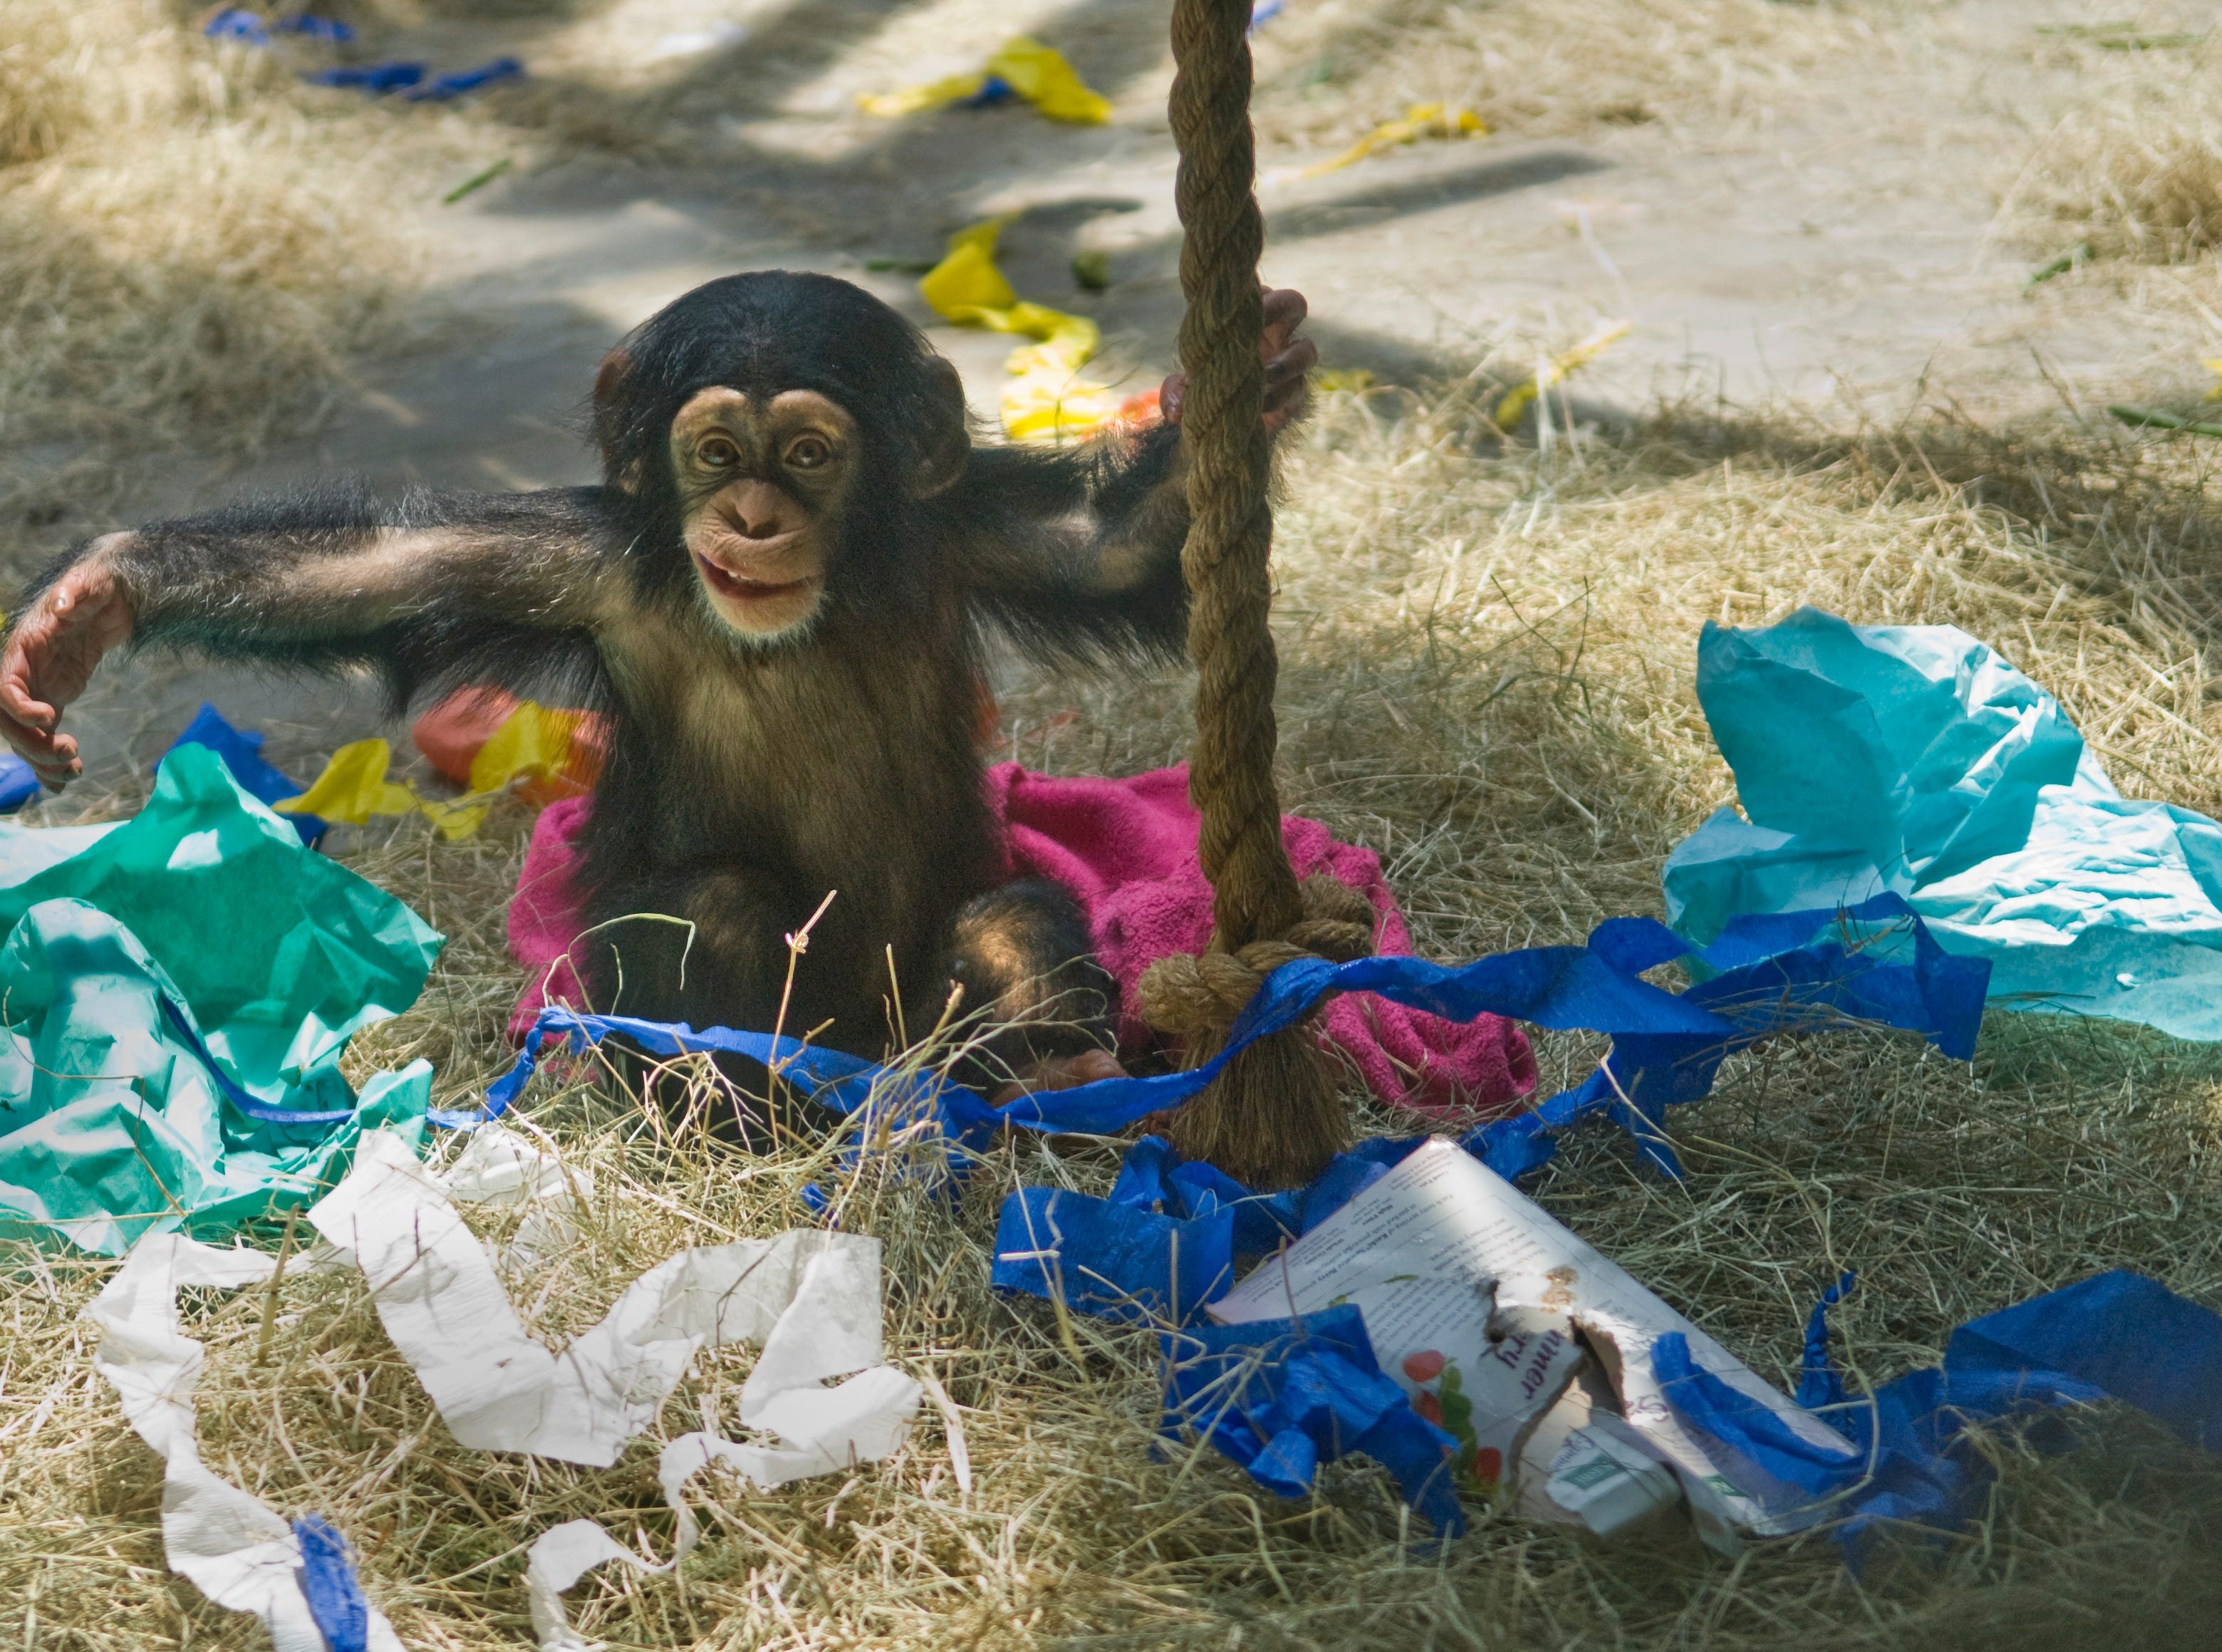 George, the baby chimpanzee at the Knoxville Zoo turns one year old, this week. George plays with streamers in the Knoxville Zoo chimpanzee exhibit on Tuesday, July 14, 2009.